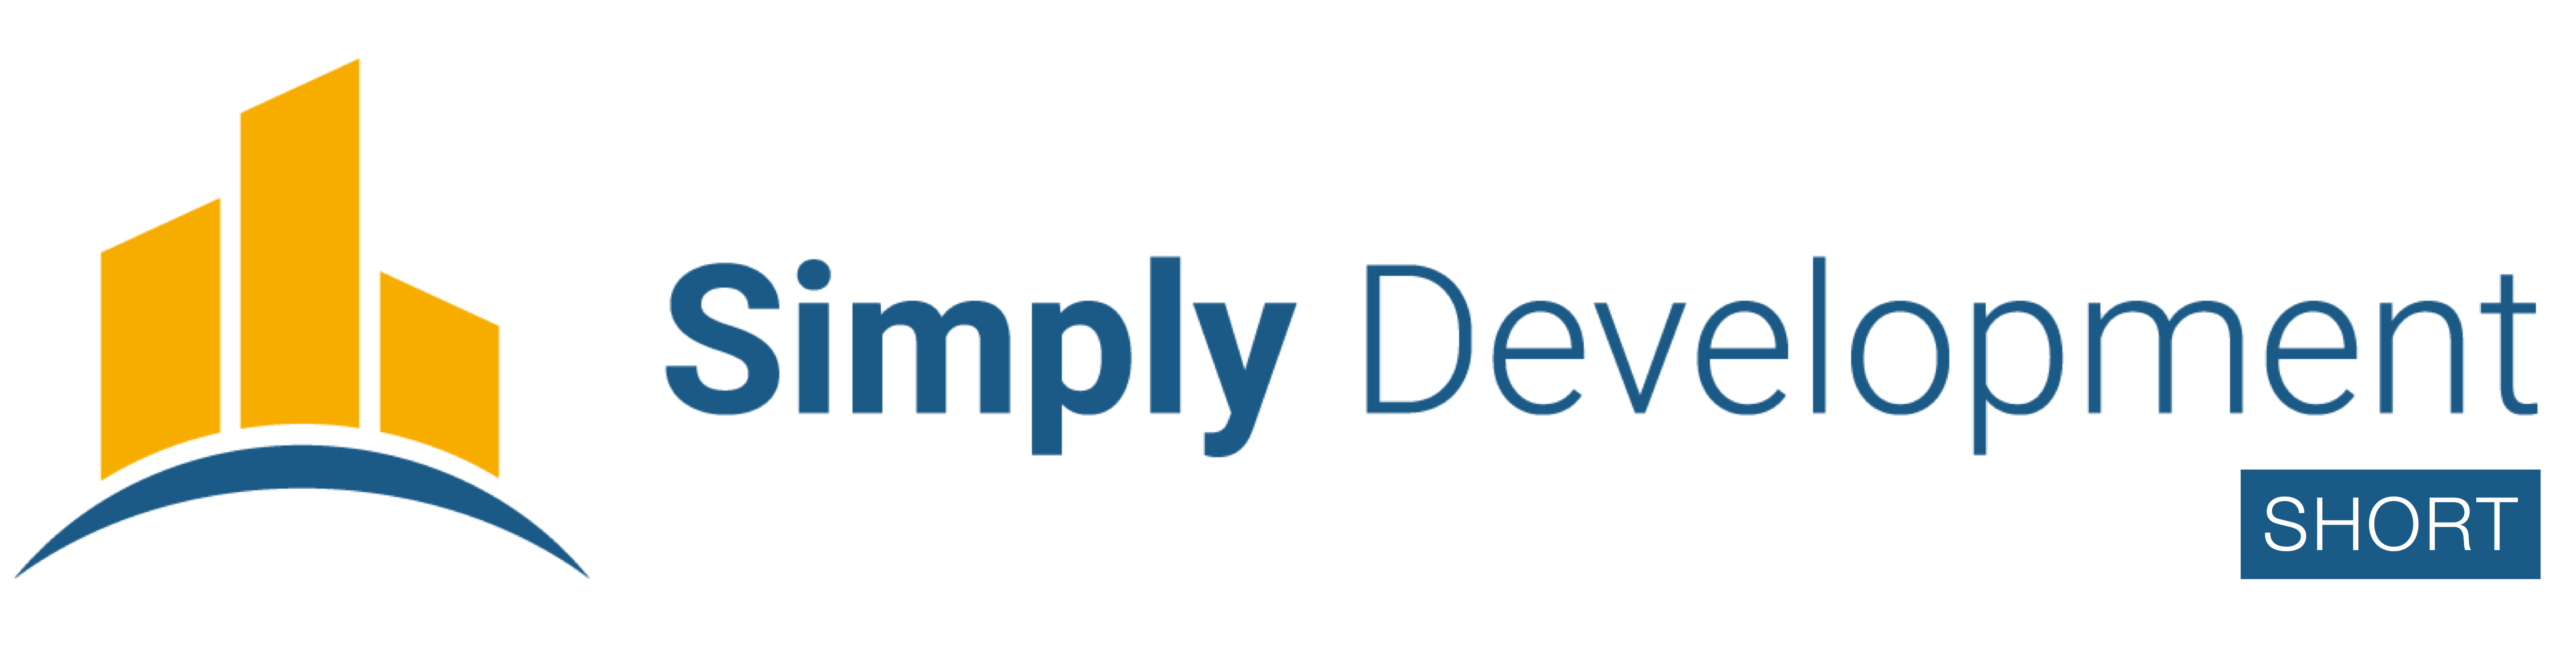 Simply Short logo